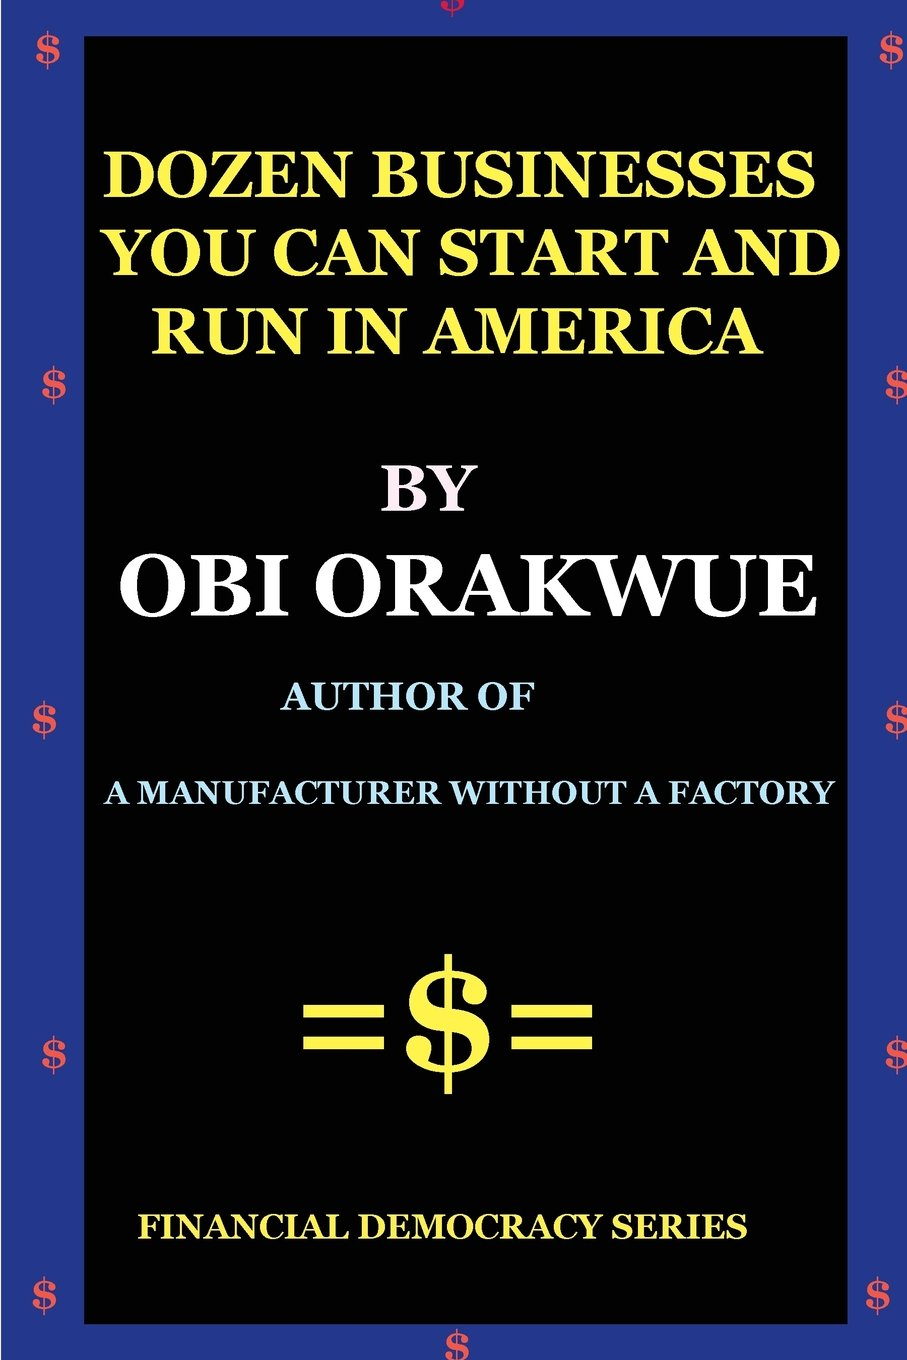 Dozen Businesses You Can Start And Run in America (Financial Democracy Series) (Volume 1) pdf epub